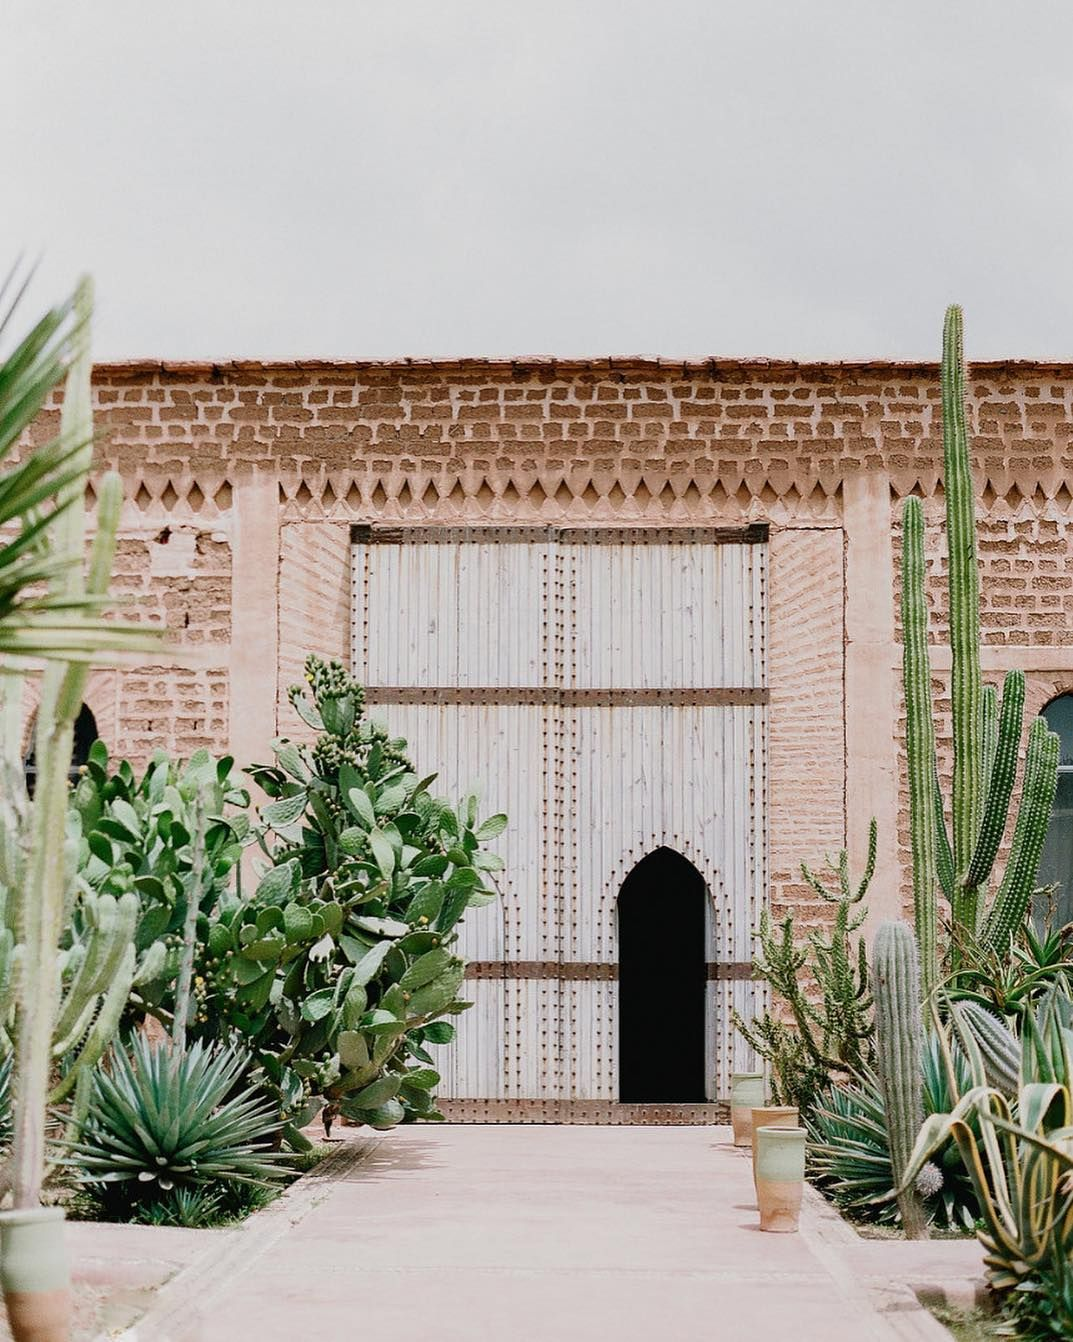 "Perfect Hideaway on Instagram: ""So much Beldi goodness ✨ 📷 @brit_gill . . . . . . . . . #theperfecthideaway #beldicountryclub  #marrakech #marrakechriad #morocco…"""